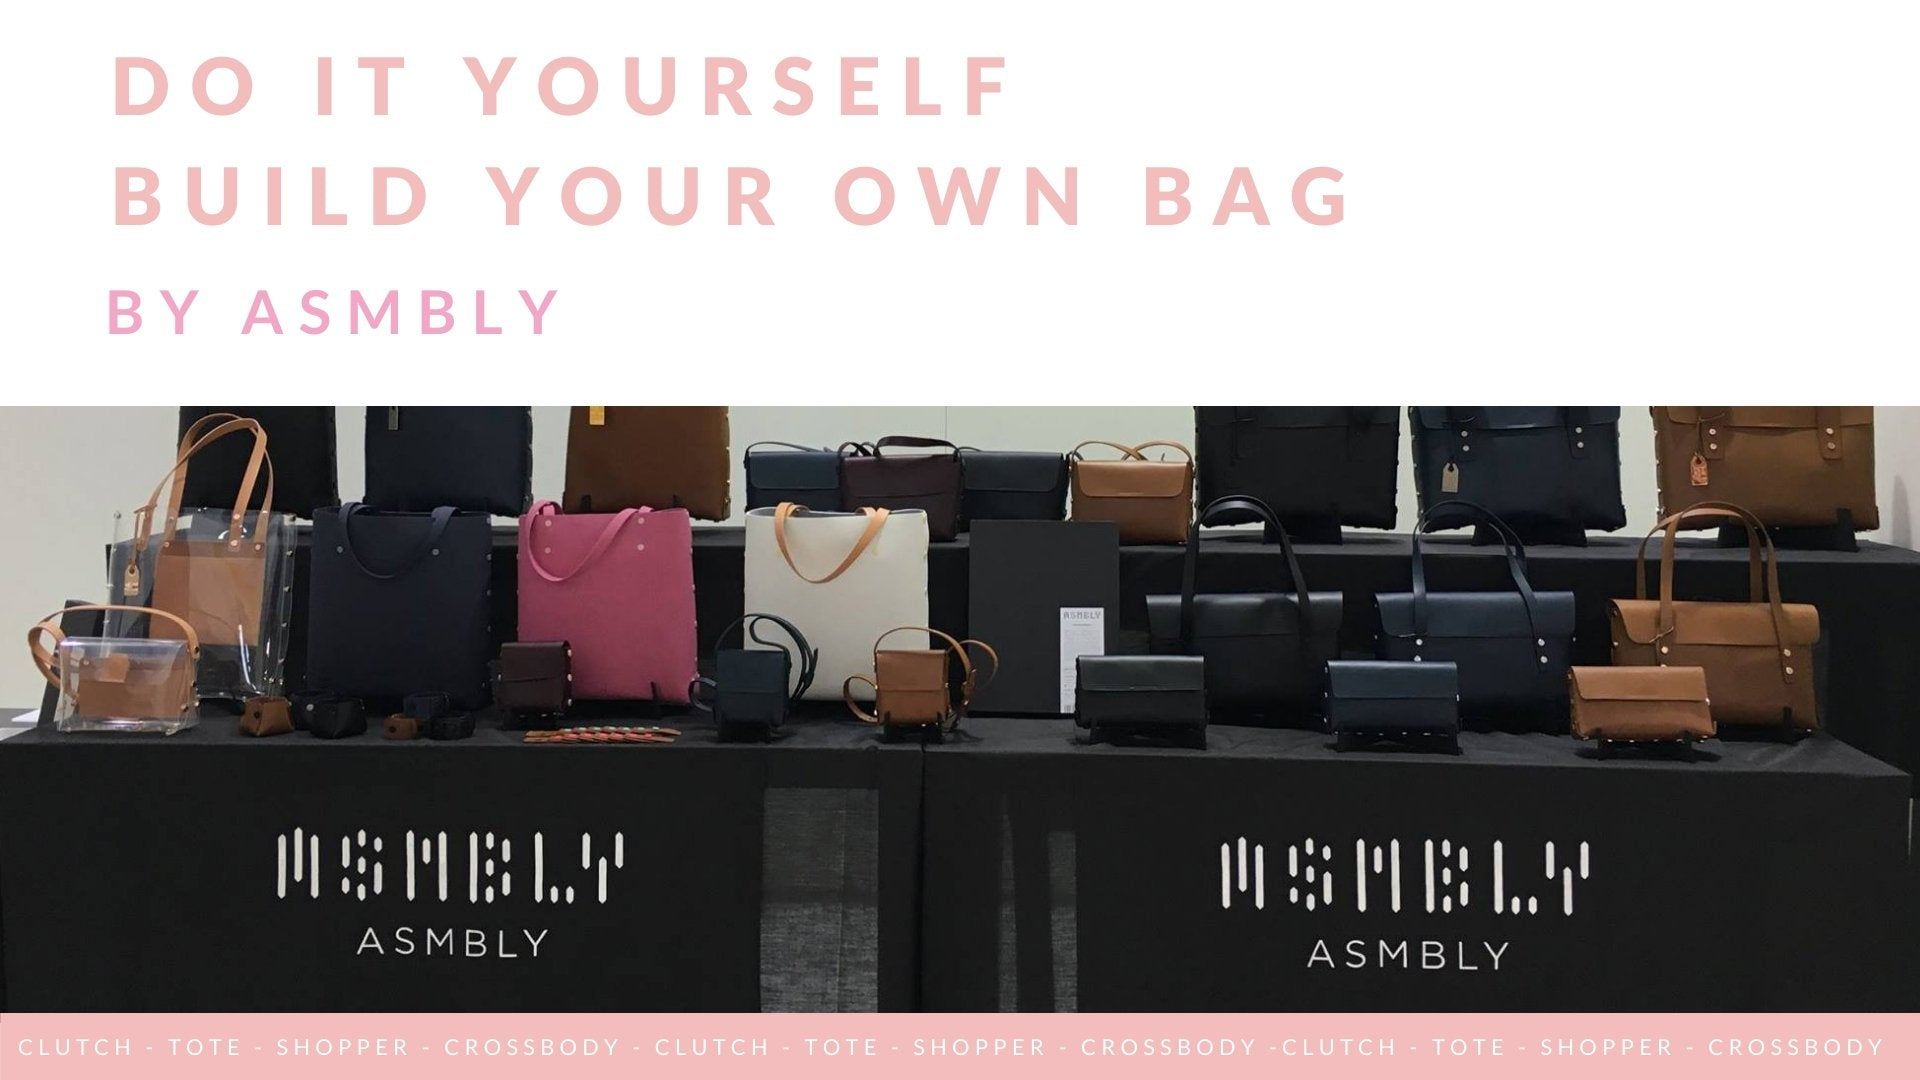 Hats 20% Off in Honor of the Royal Wedding Only at Handbag Tailor